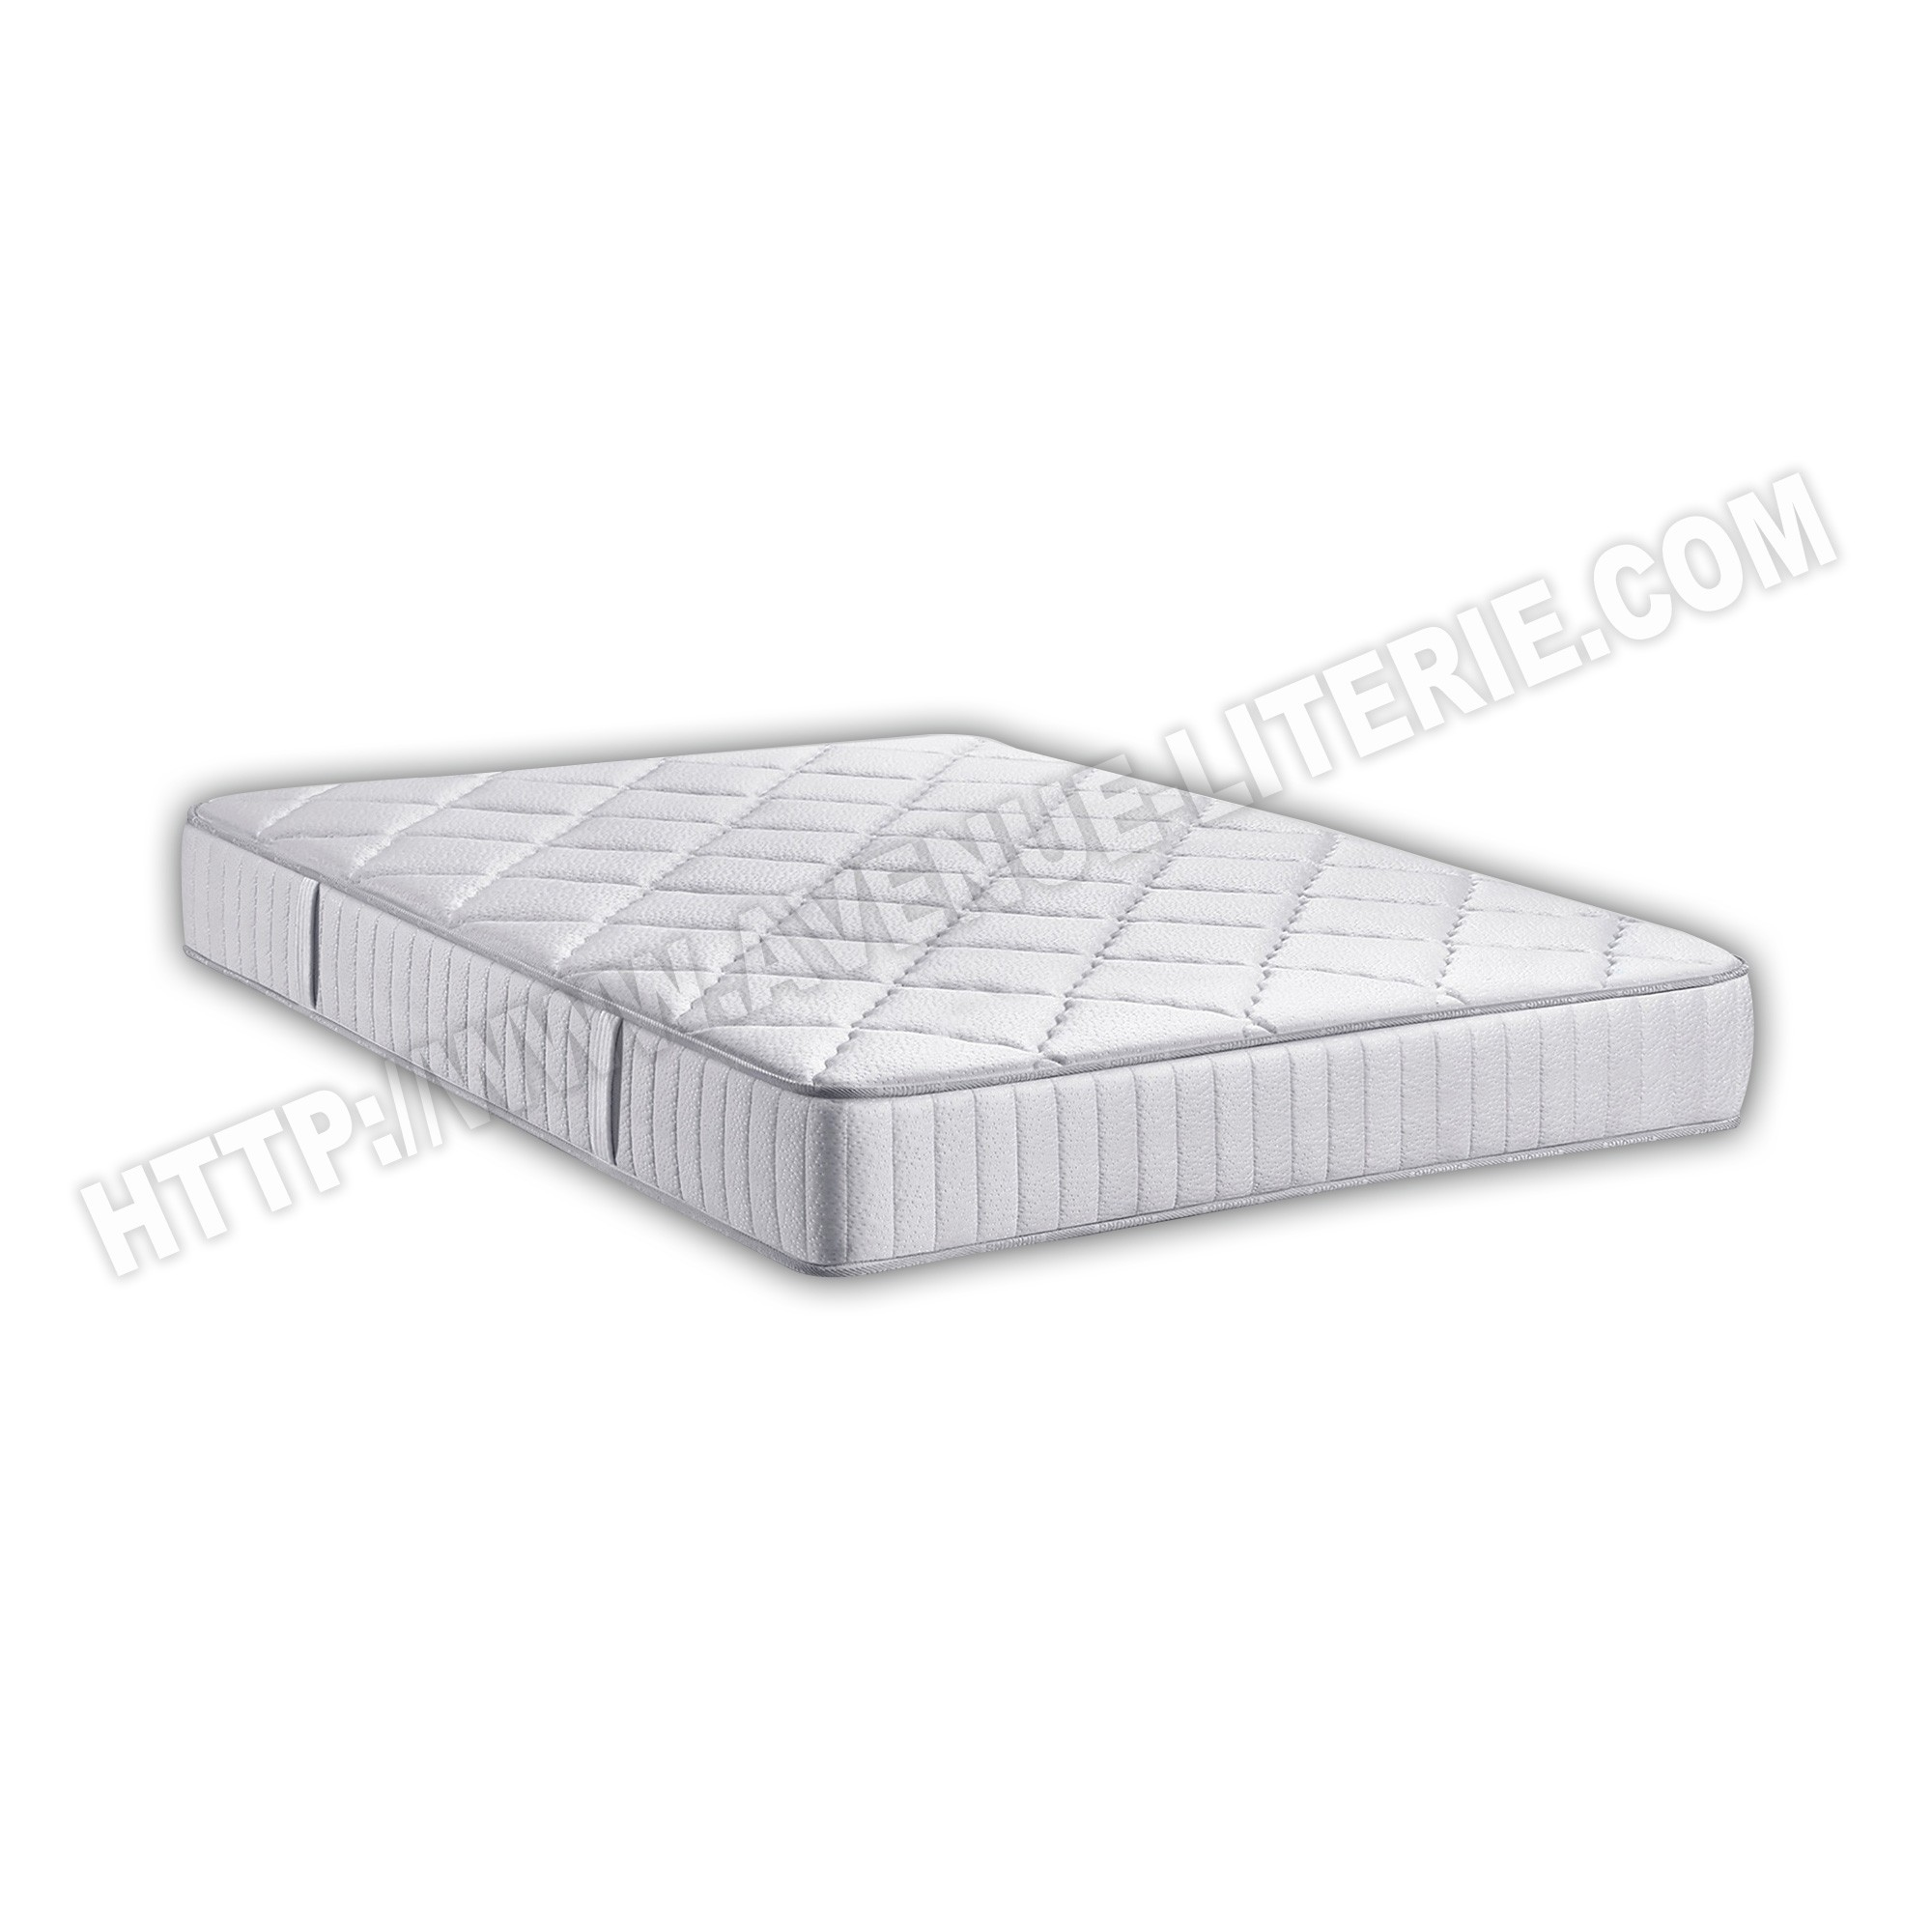 matelas latex 140x190 soldes elegant matelas x latex pas. Black Bedroom Furniture Sets. Home Design Ideas